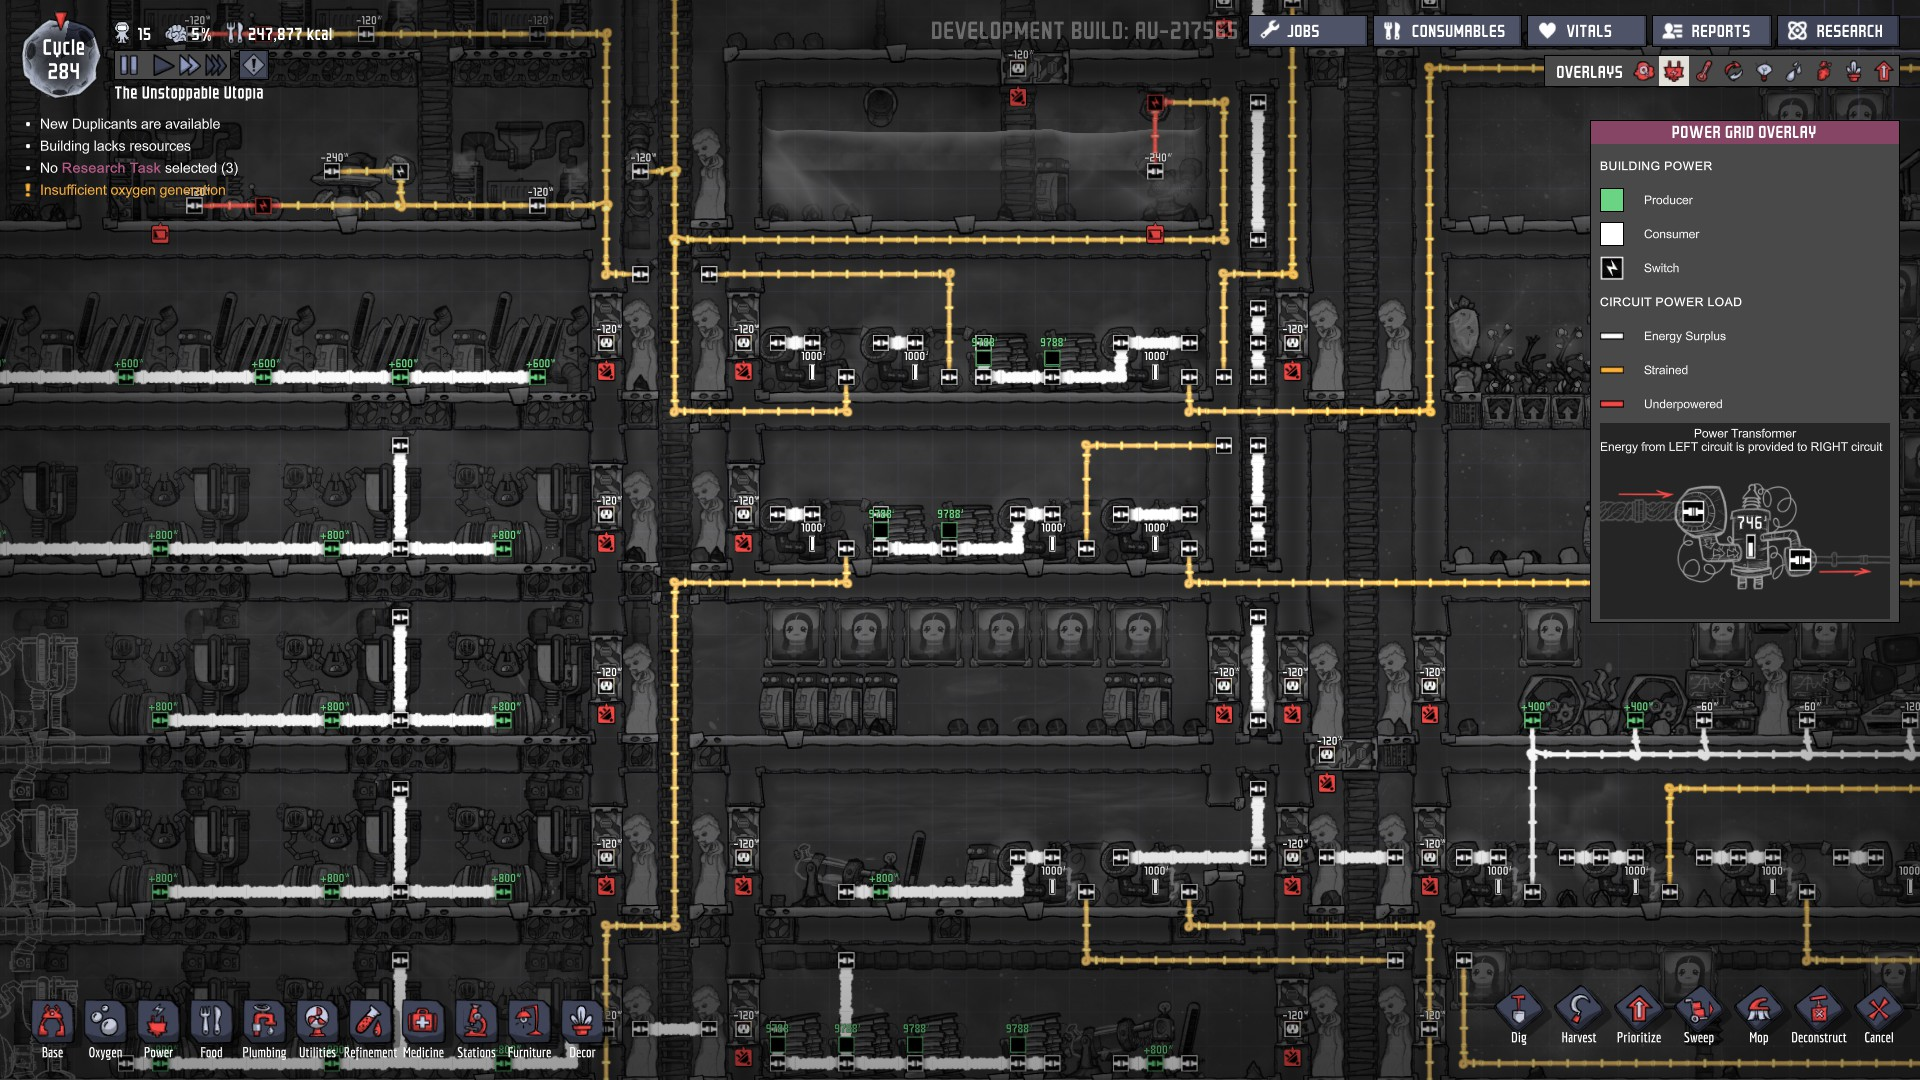 hight resolution of those heavy wires are connected to the other side of my base and at that end it also got transformers distributing power for that sector